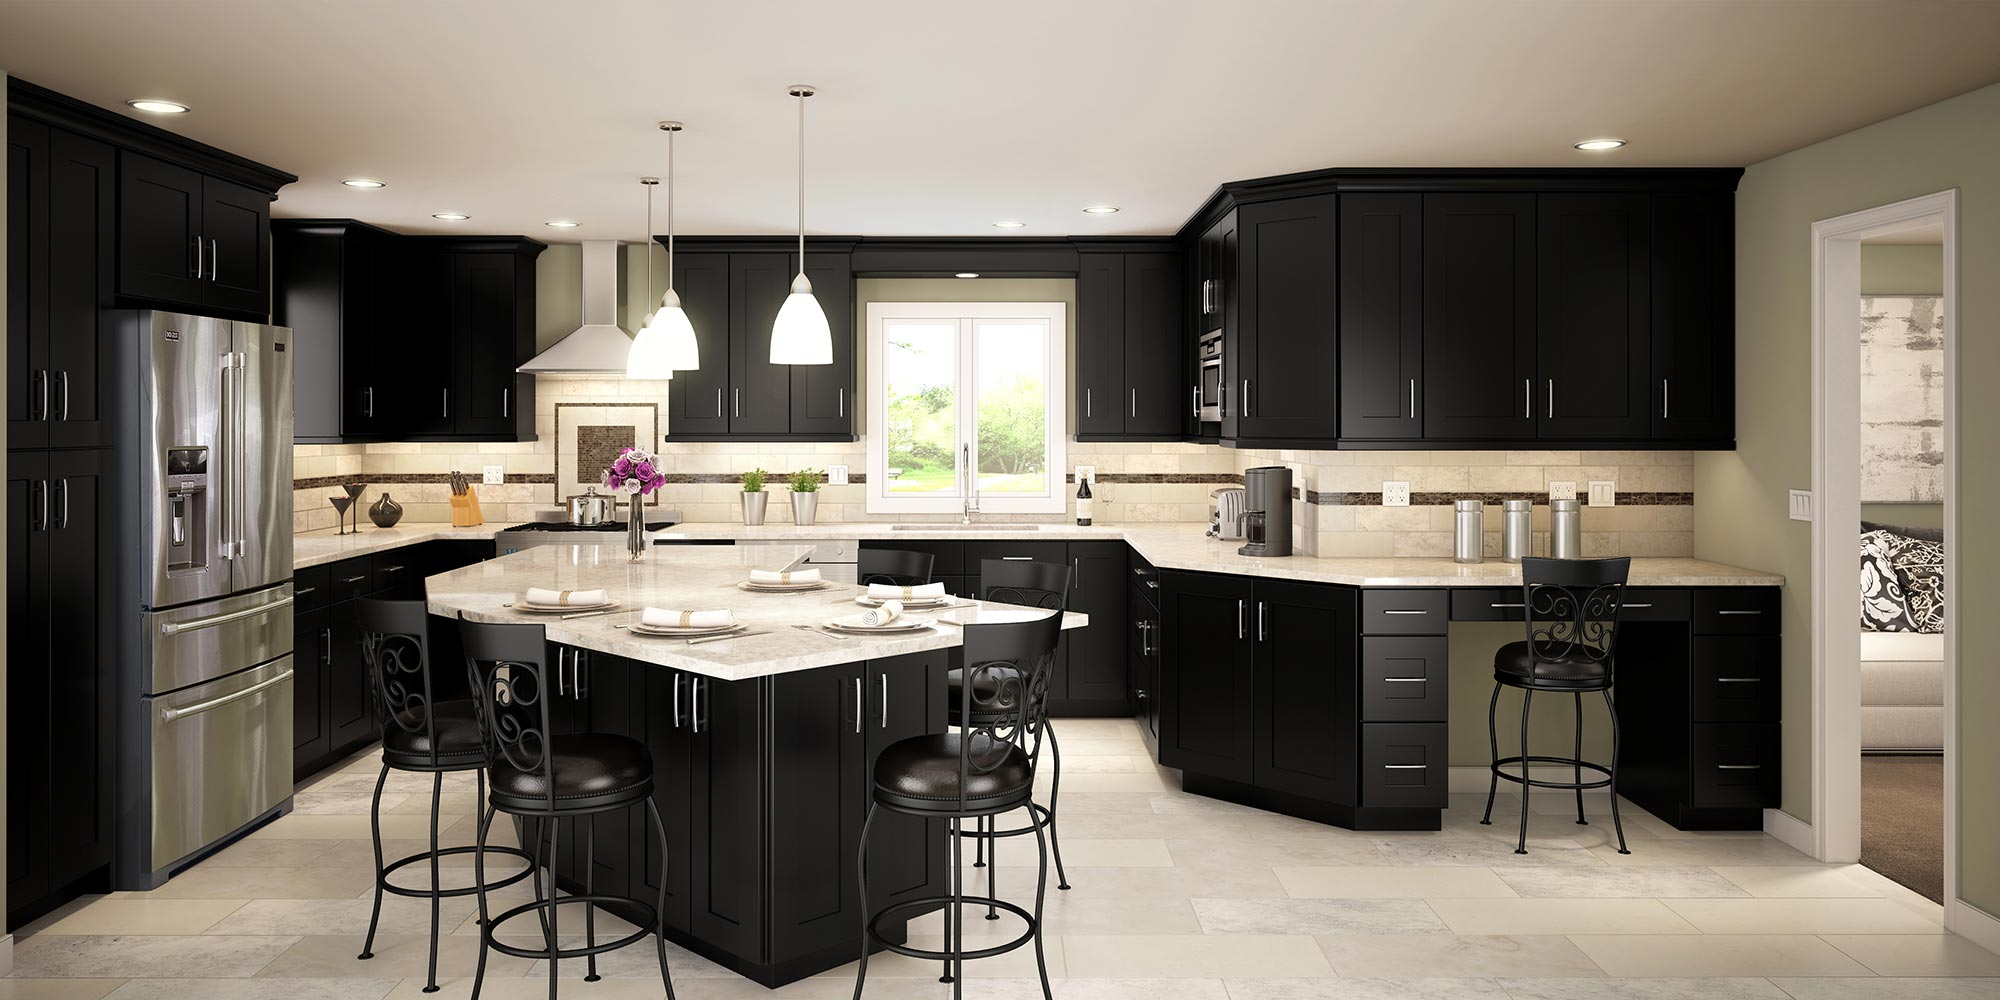 Kitchen Black interior Design